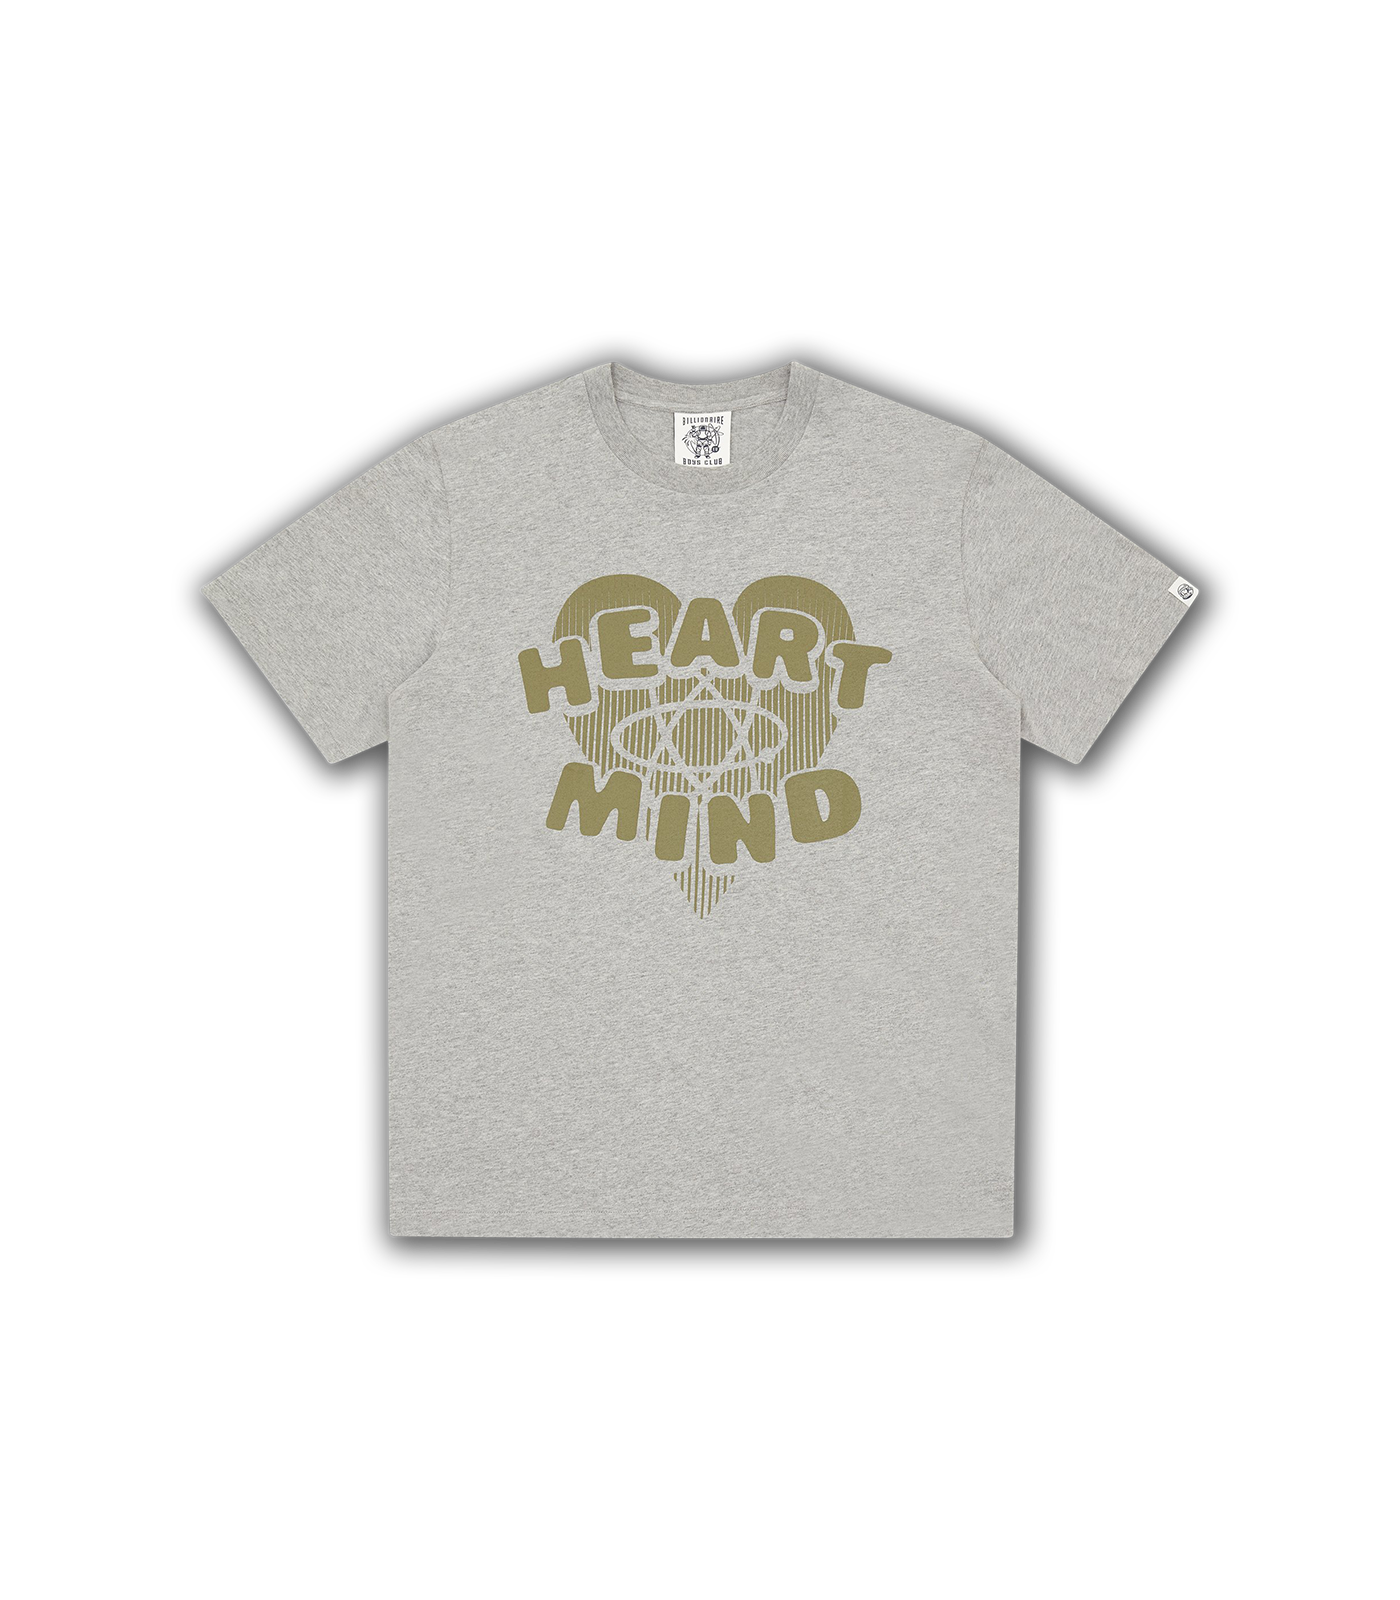 HEART & MIND GRAPHIC T-SHIRT - HEATHER GREY